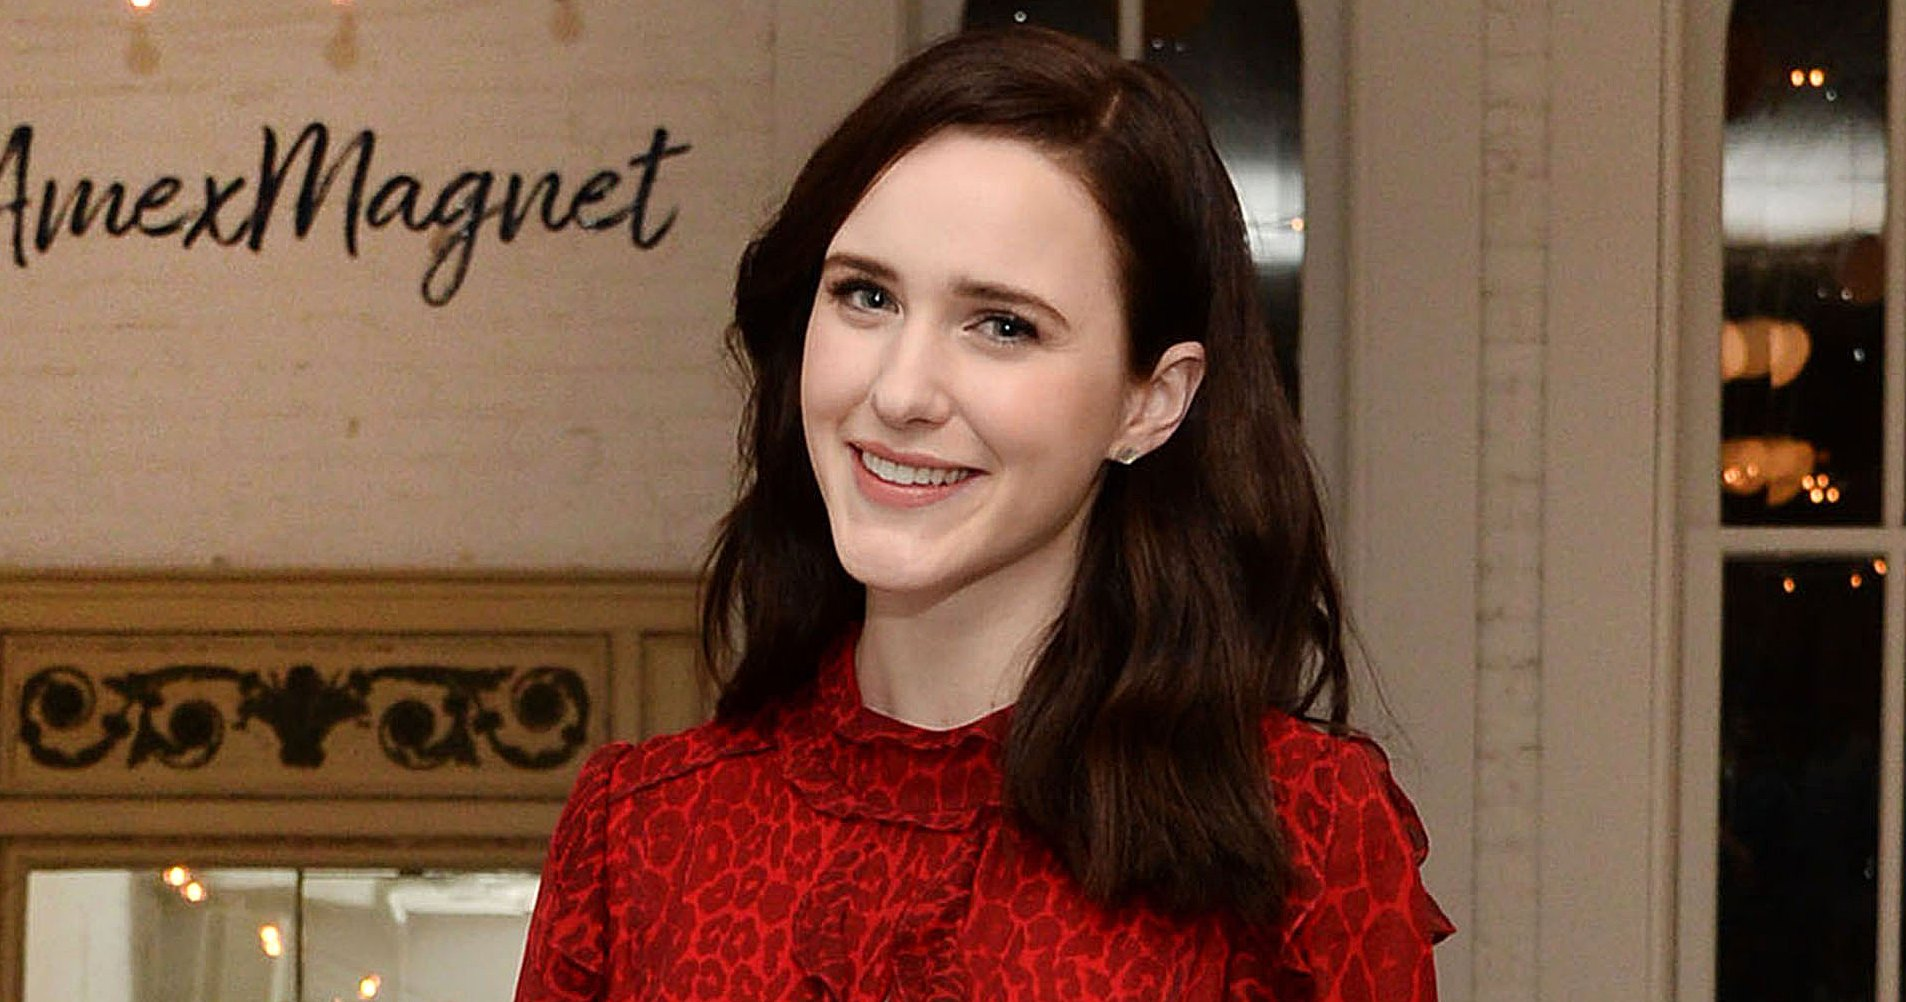 Rachel Brosnahan on Filming 'The Marvelous Mrs. Maisel' Season 2 in Paris: 'I Ate All the Baguettes'